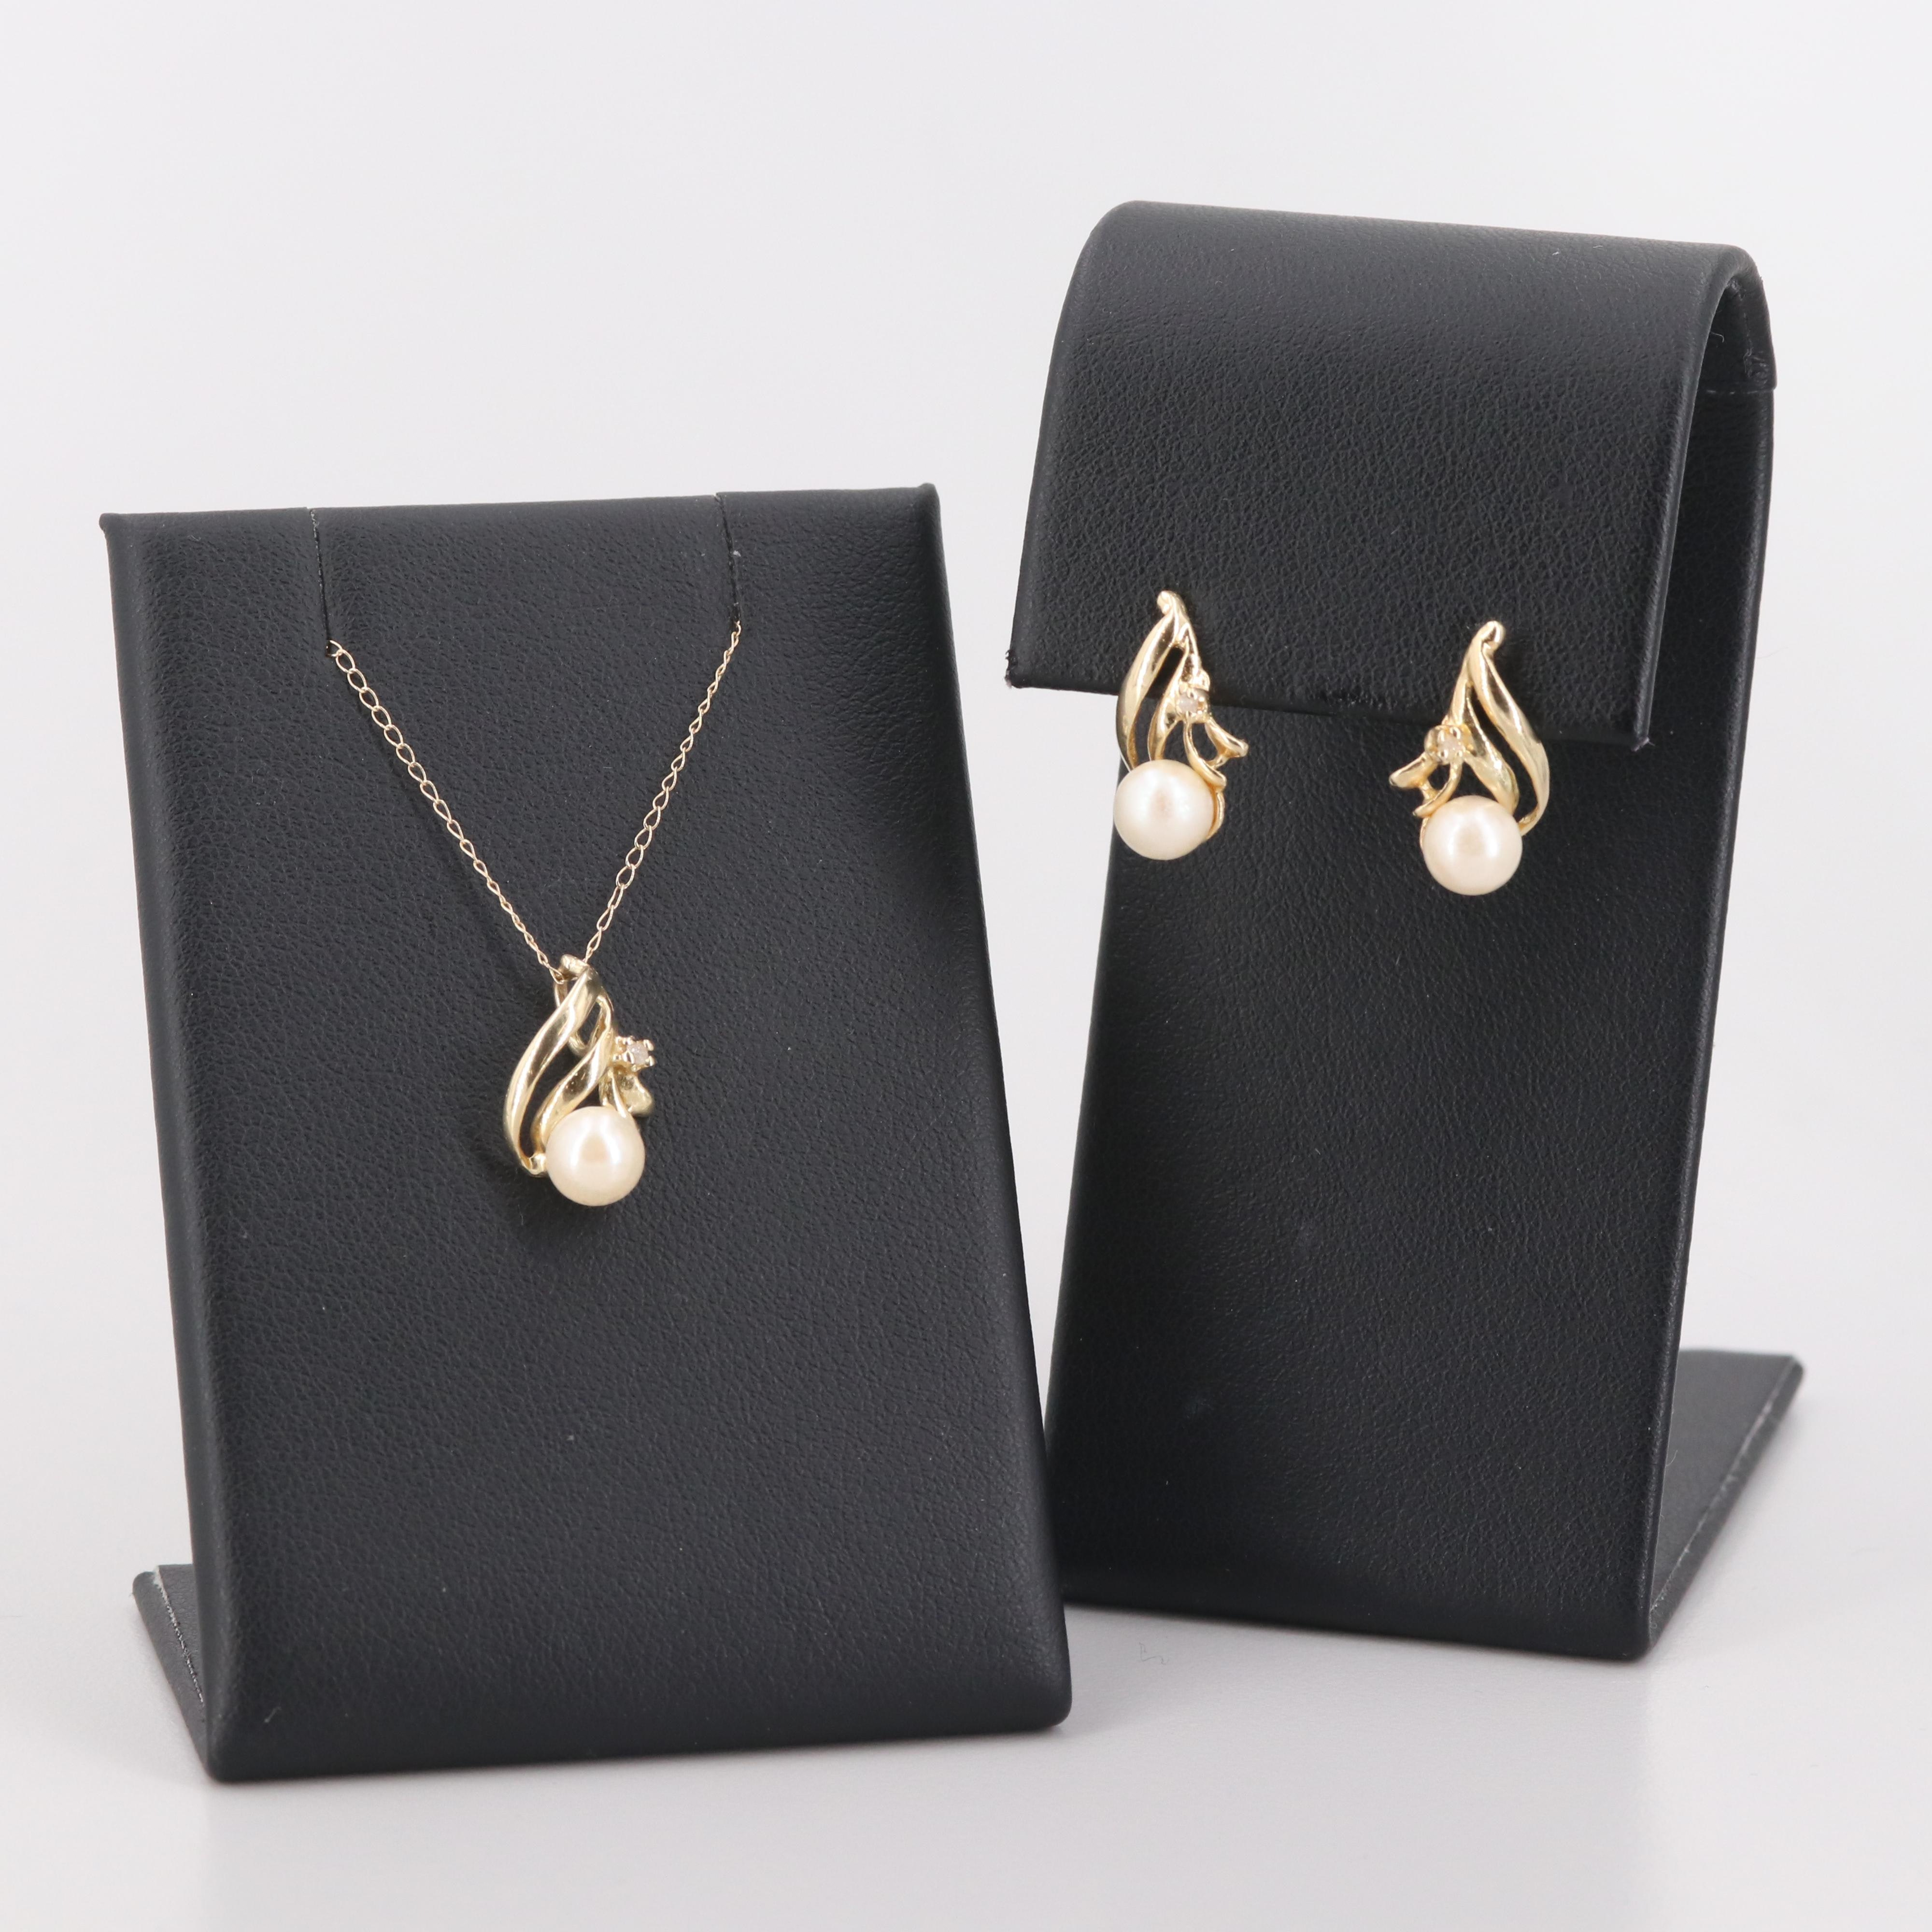 10K and 14K Yellow Gold Gems Cultured Pearl and Diamond Necklace and Earring Set